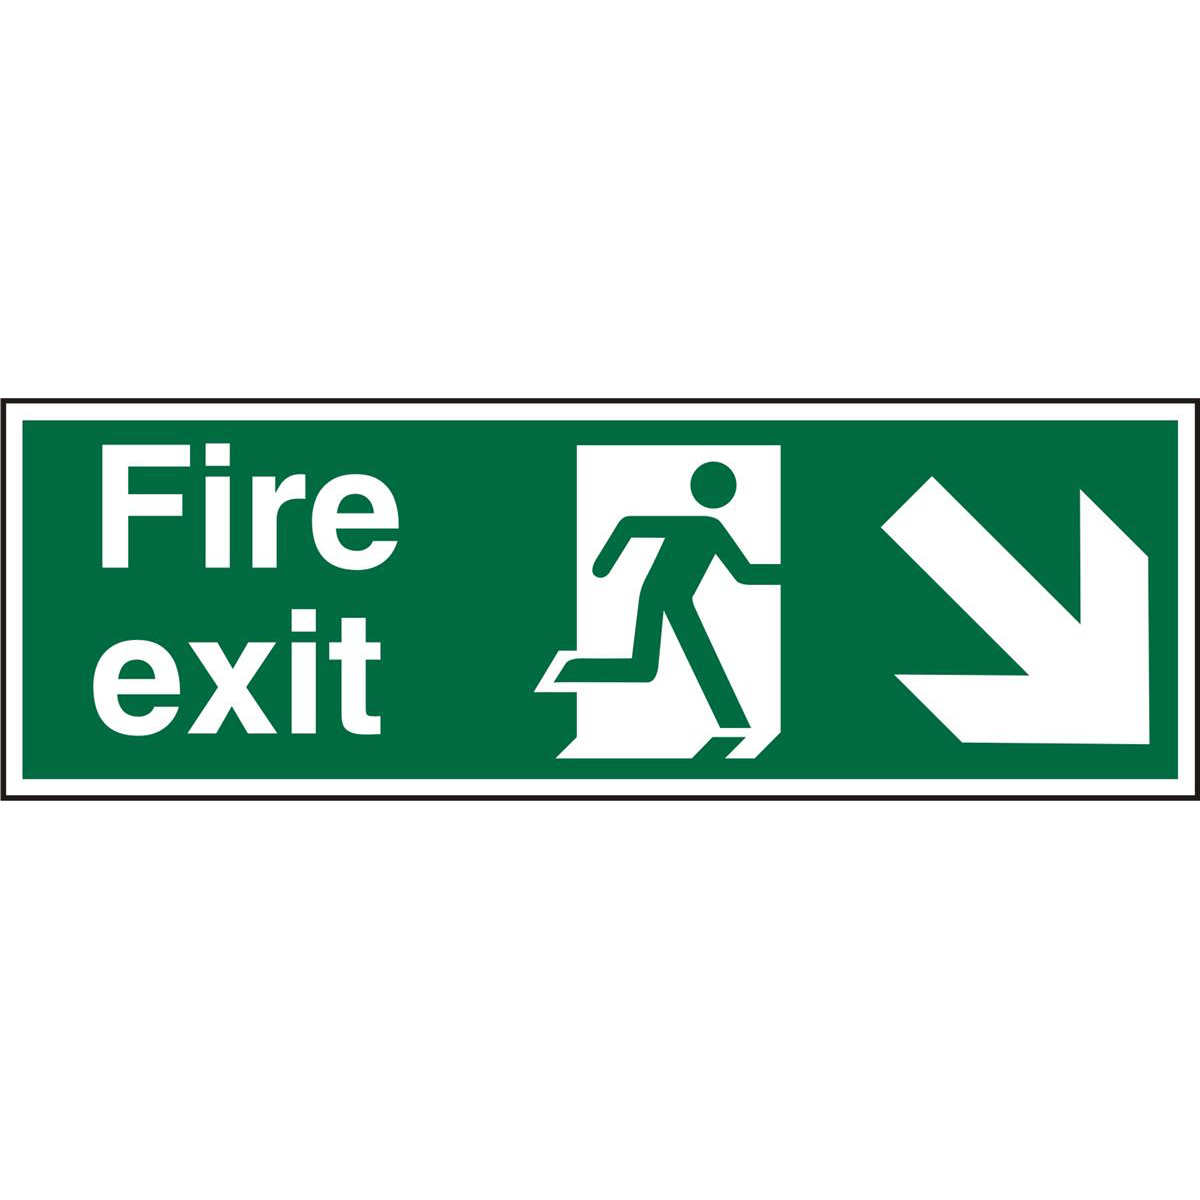 Prestige Sign 2mm DS 300x100 FireExit Man Running Right&Arrow Ref ACSP123300x100 Up to 10 Day Leadtime